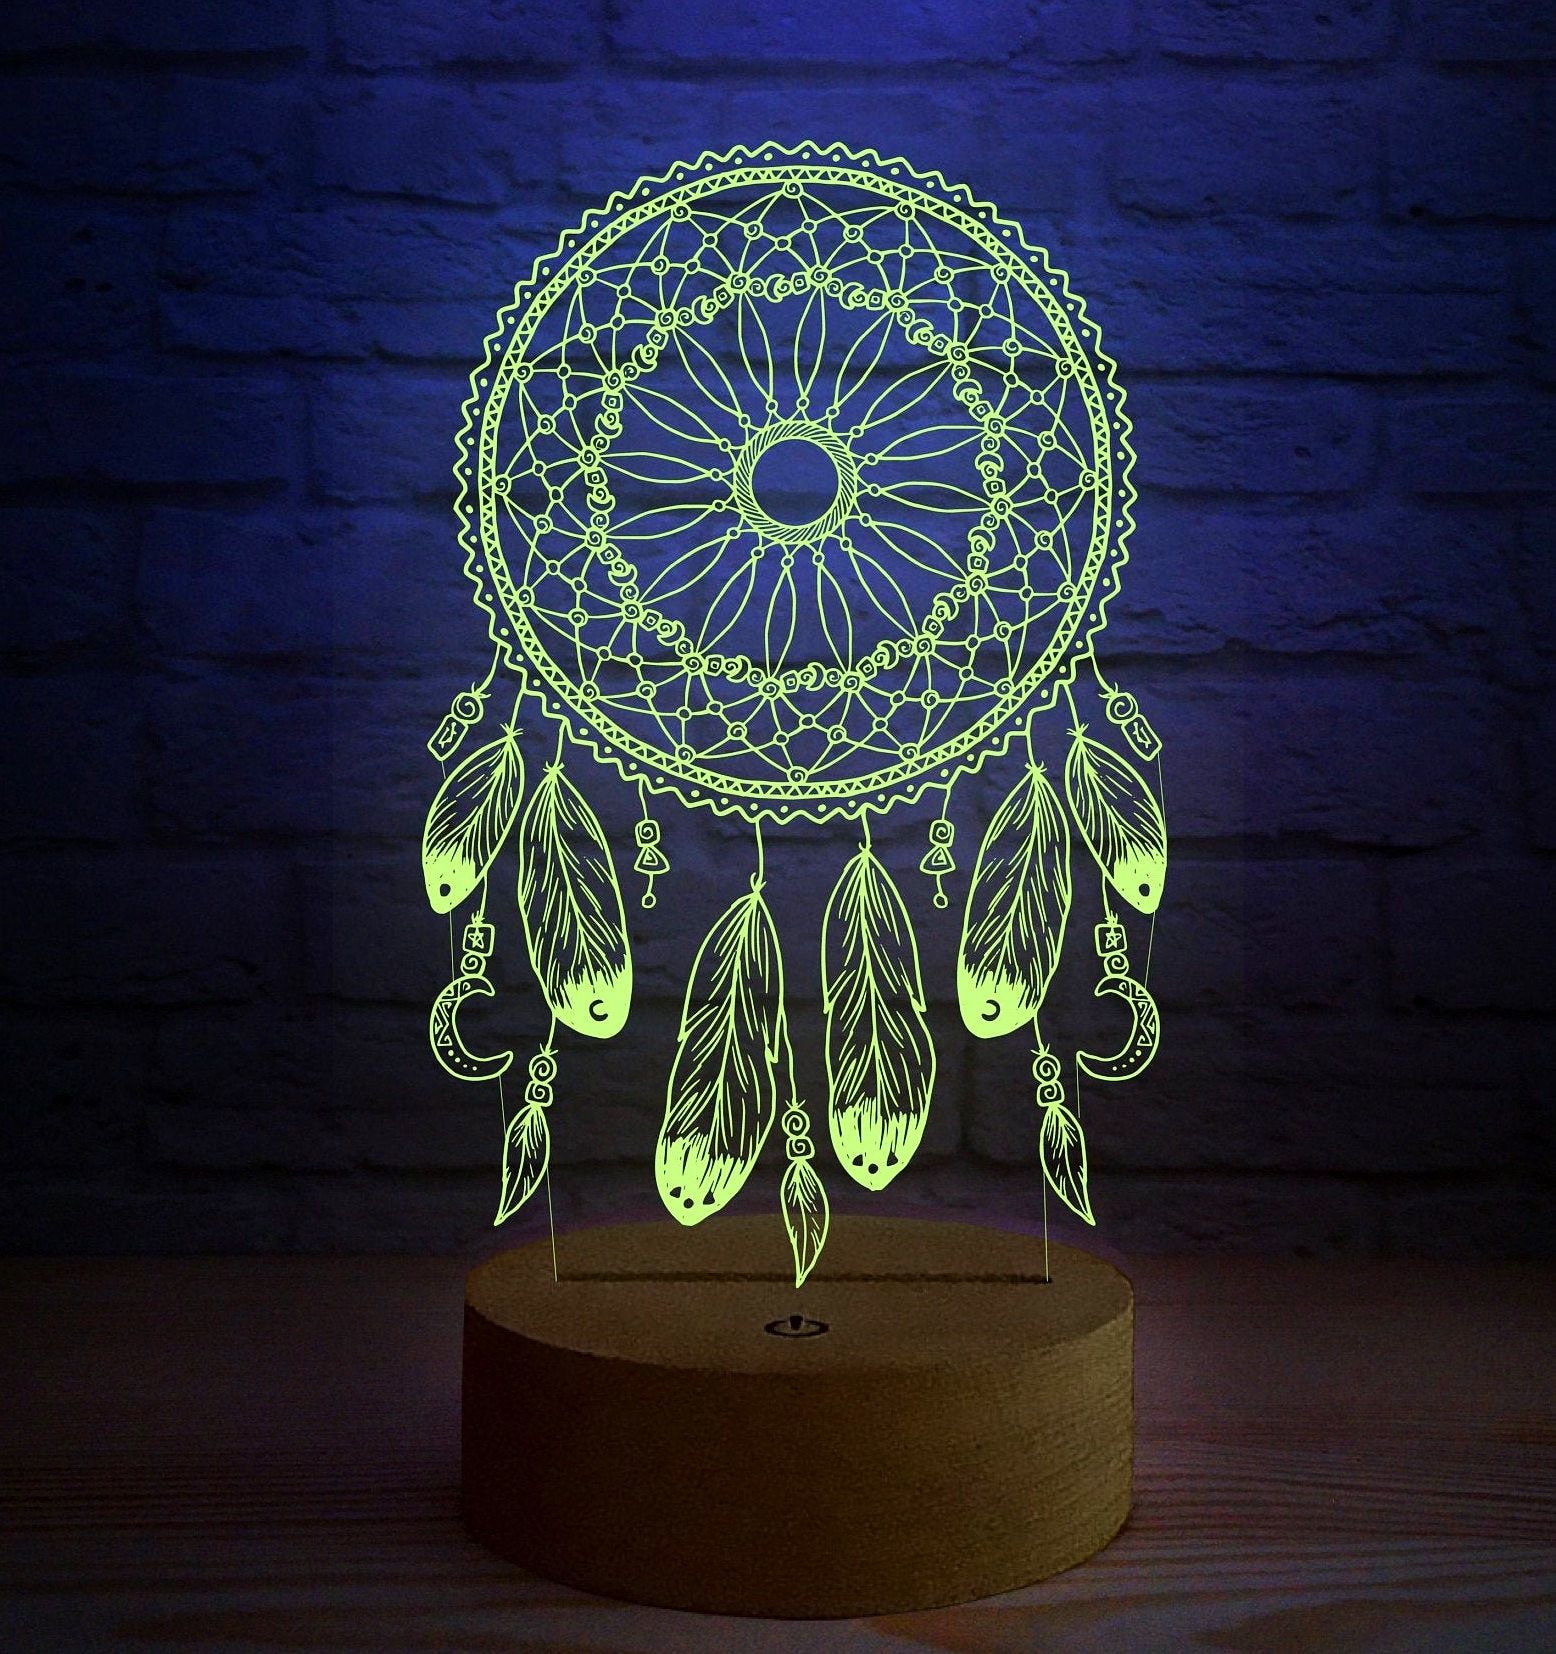 Dreamcatcher 3d Led Lamp Nursery Dream Catcher Table Night Lamp Boho Gift For Her Wooden Base Lamp With Brightness Adjustment Function In 2020 Unique Night Lights 3d Led Lamp Night Light Lamp